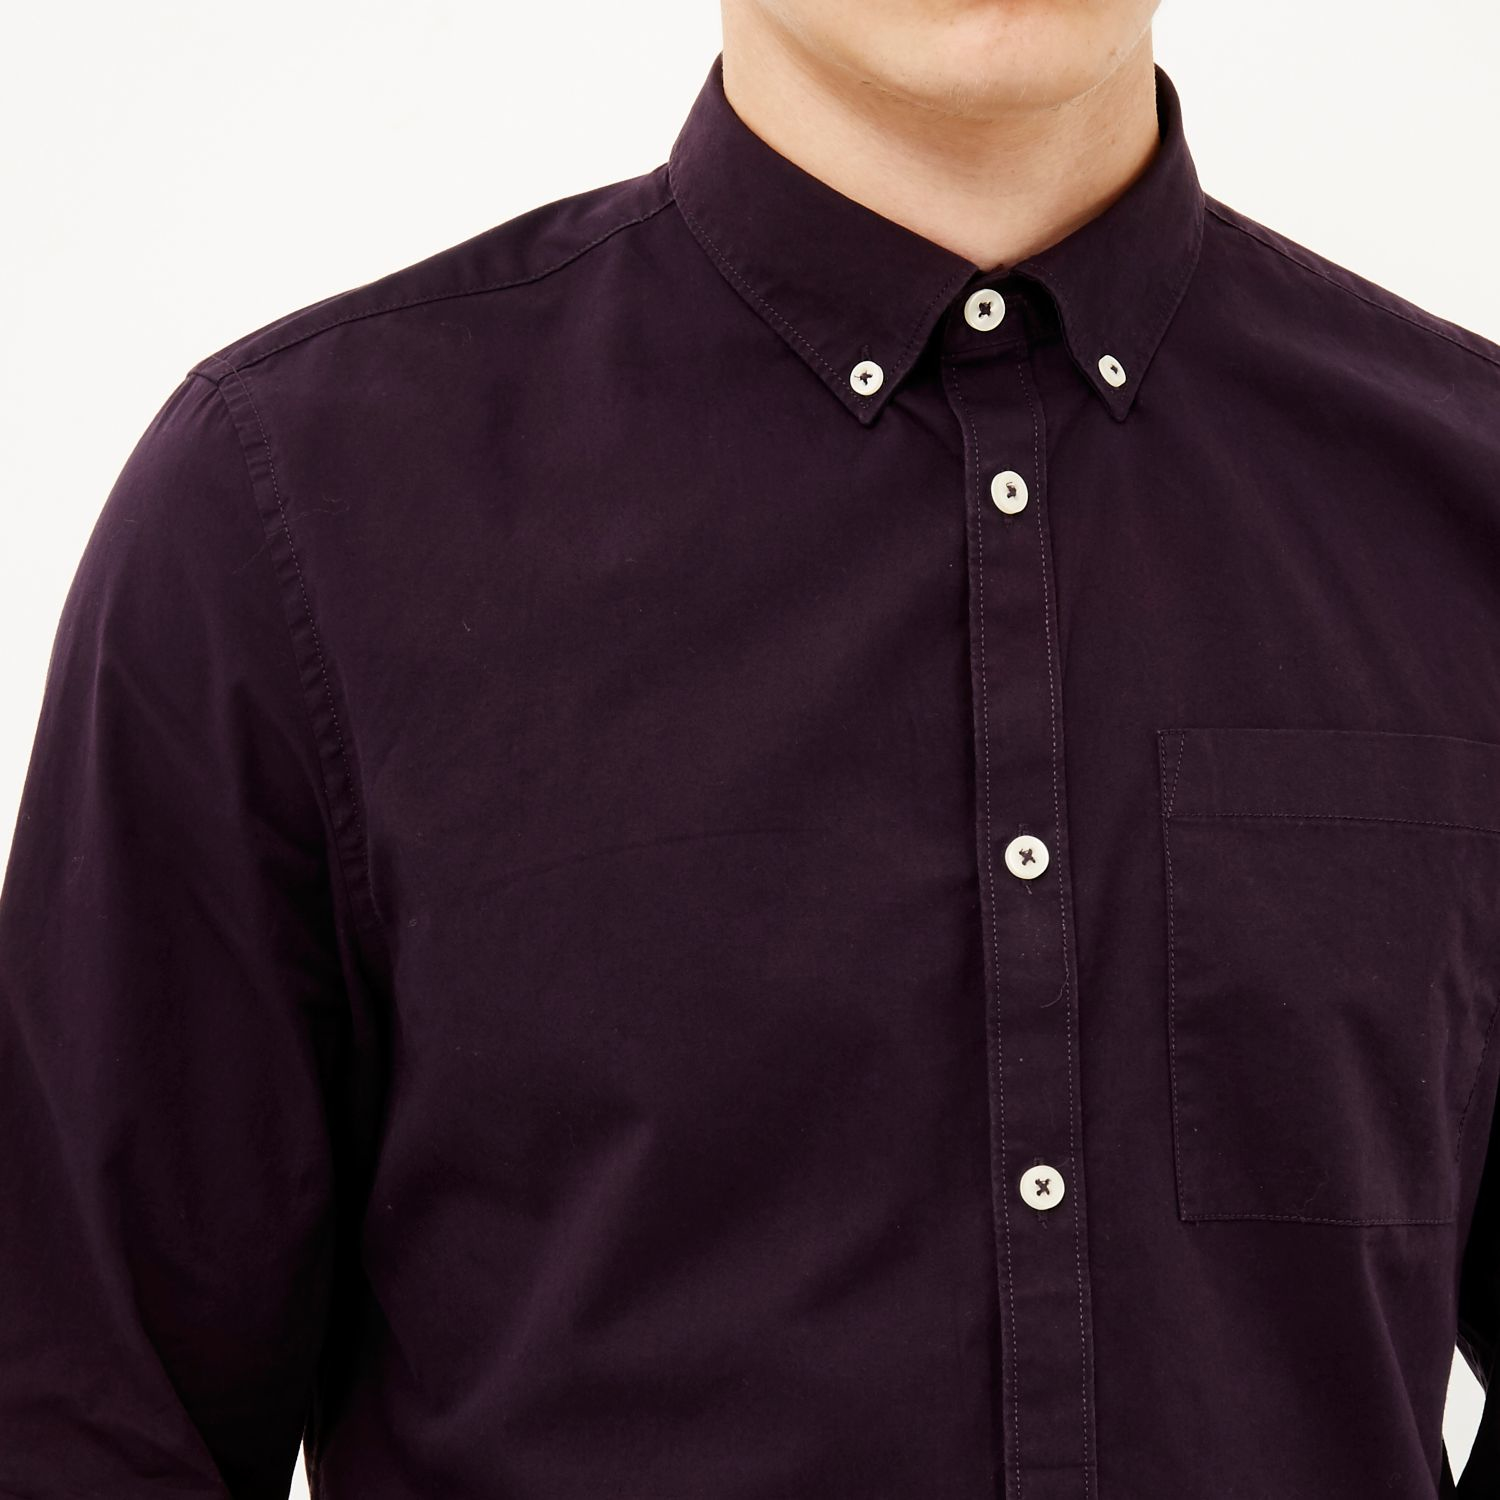 Find great deals on eBay for dark purple men shirts. Shop with confidence.